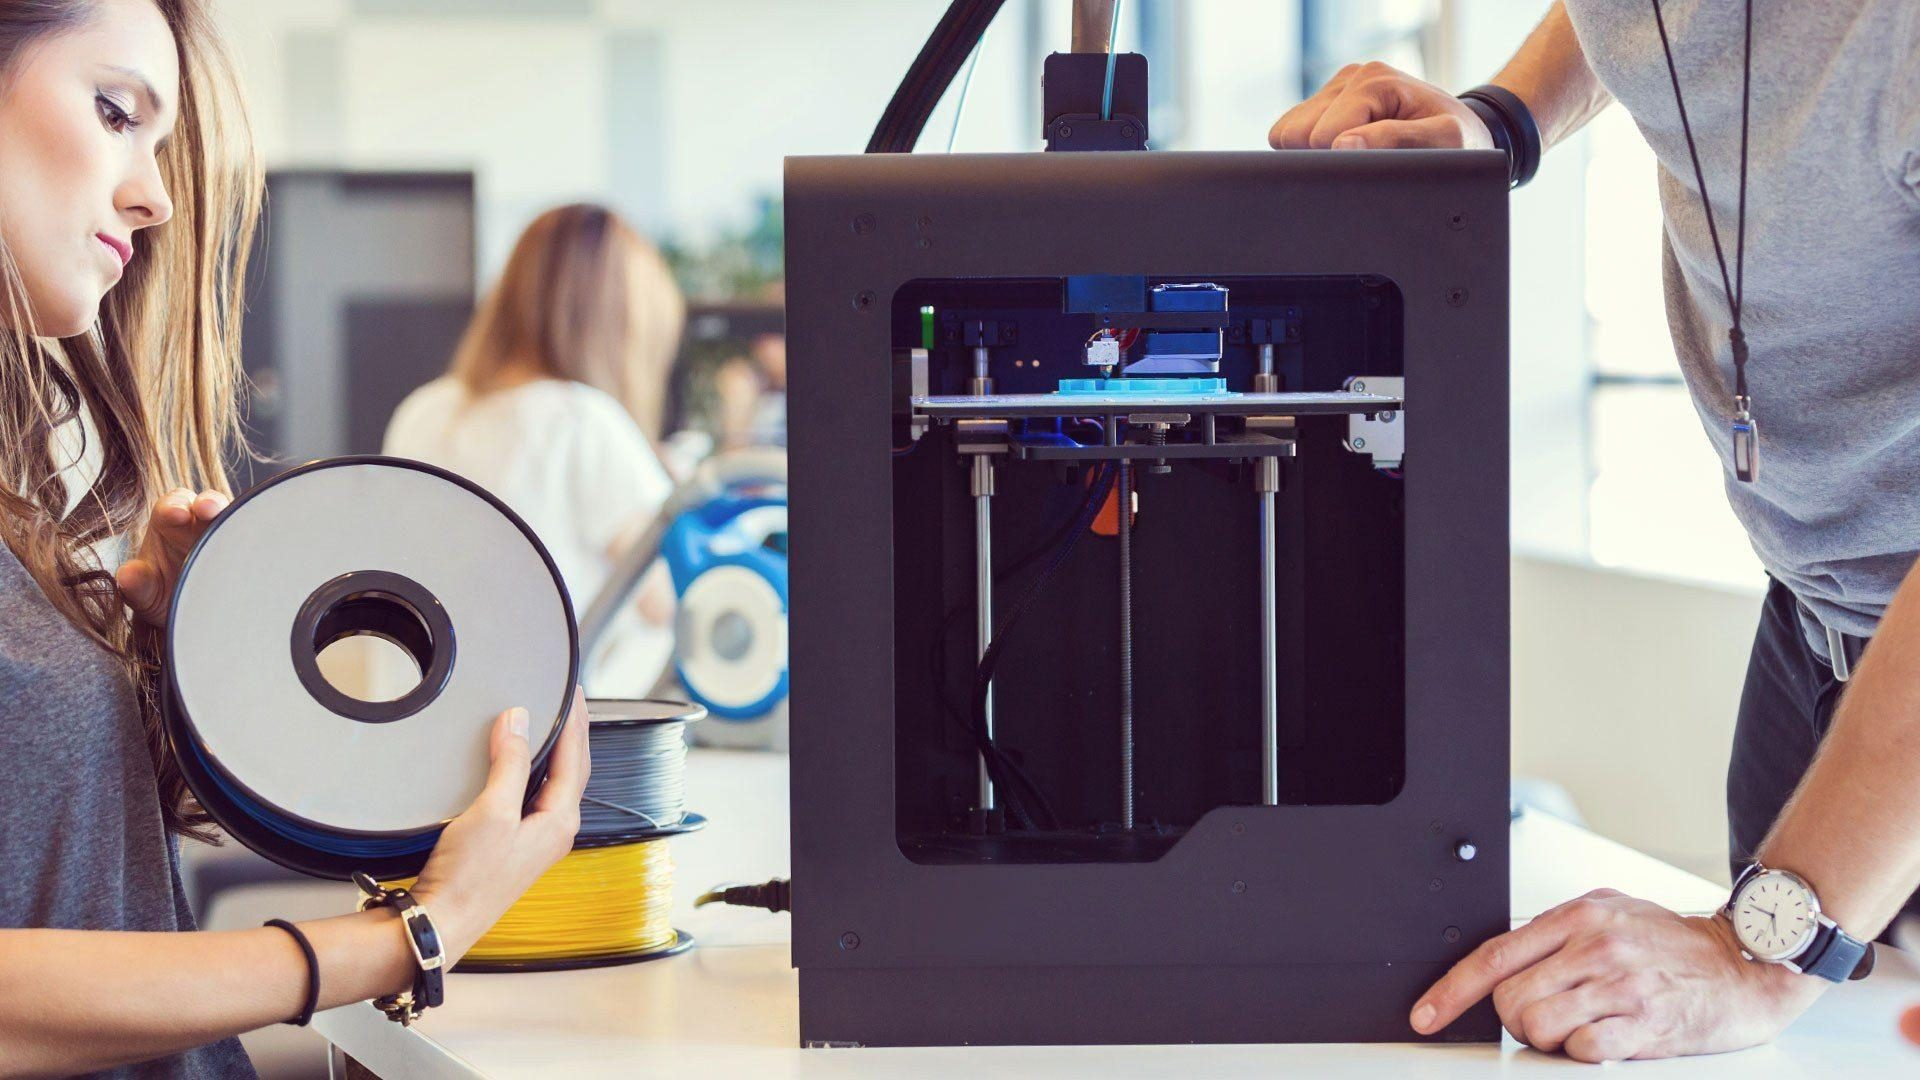 Photo of a 3D printer being configured